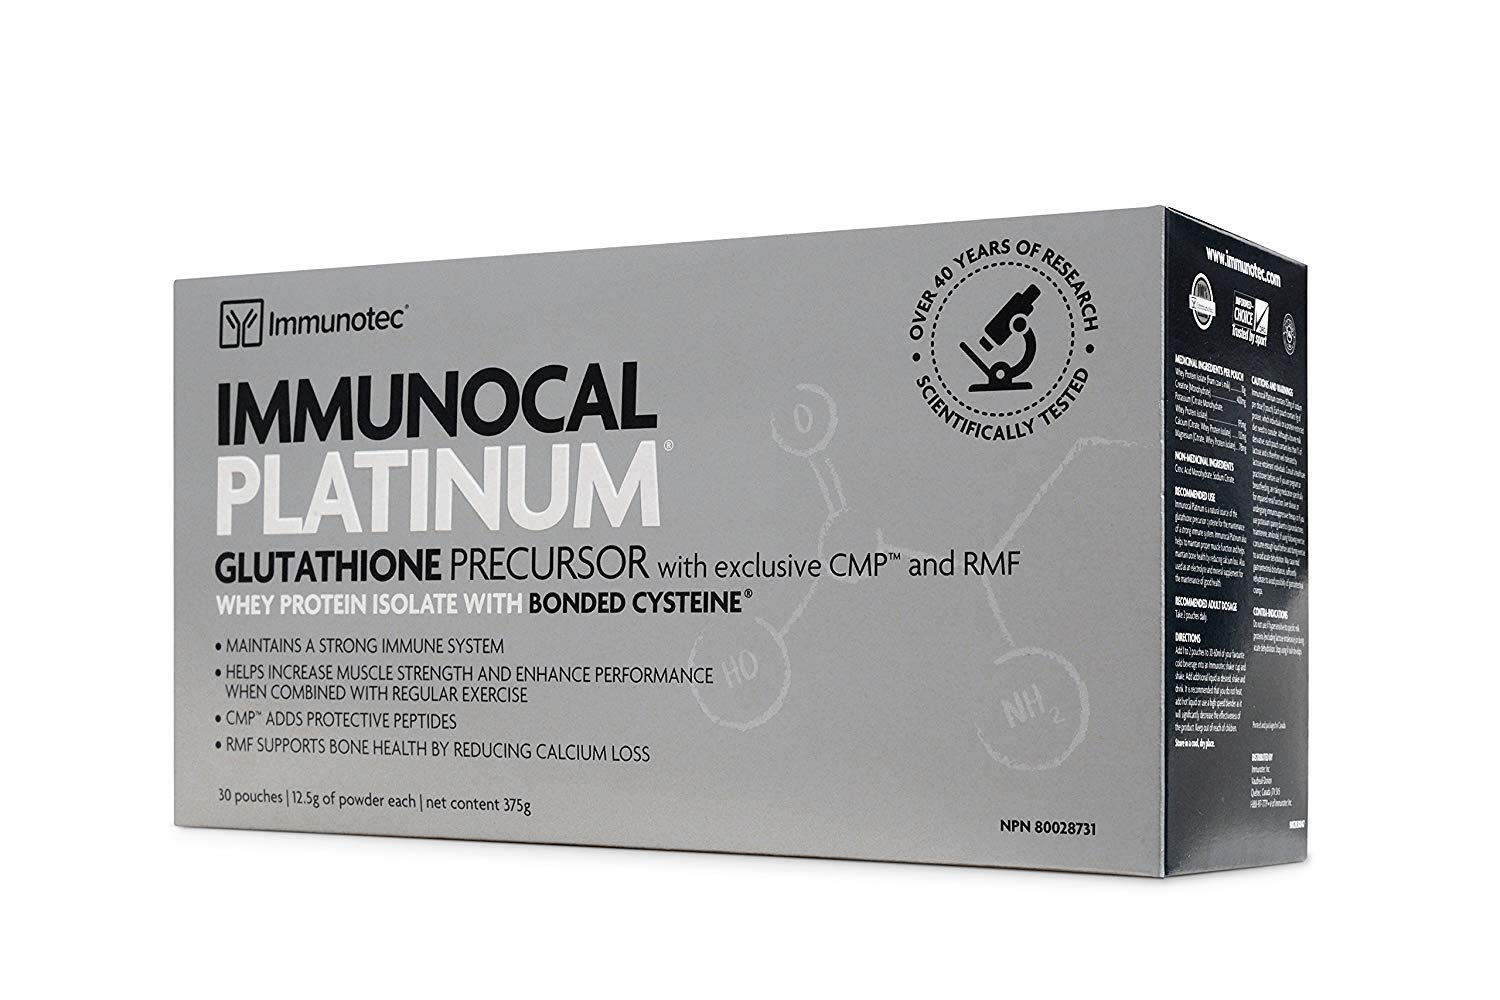 HMS-90 Immunocal Platinum 30packs HMS 90 Brand Immunocal, 0.44 oz Each